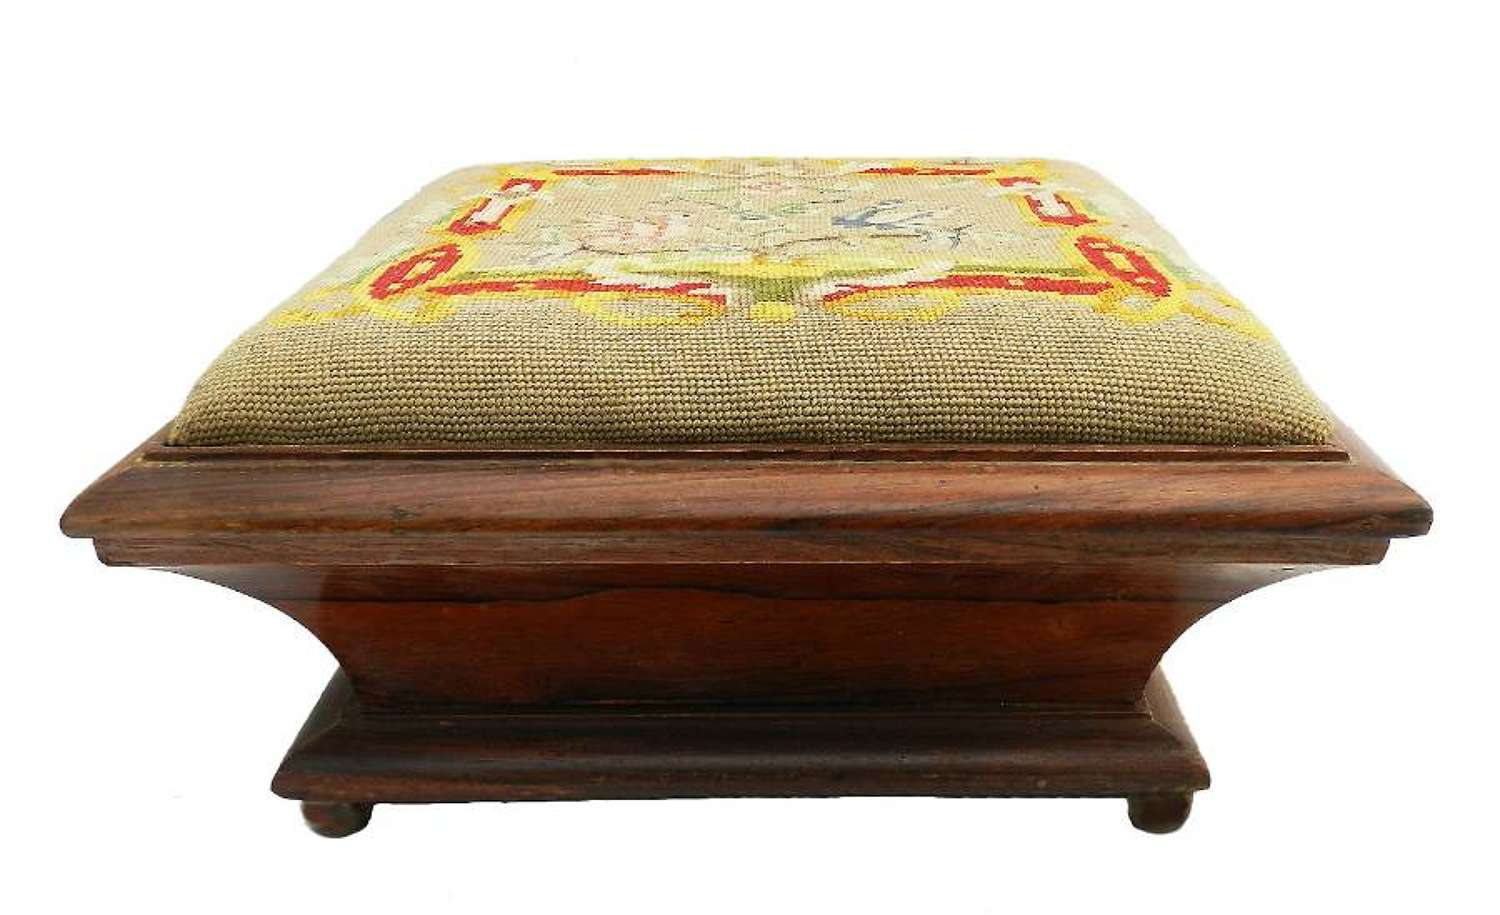 Antique Needlepoint Footstool French Belle Époque c1900